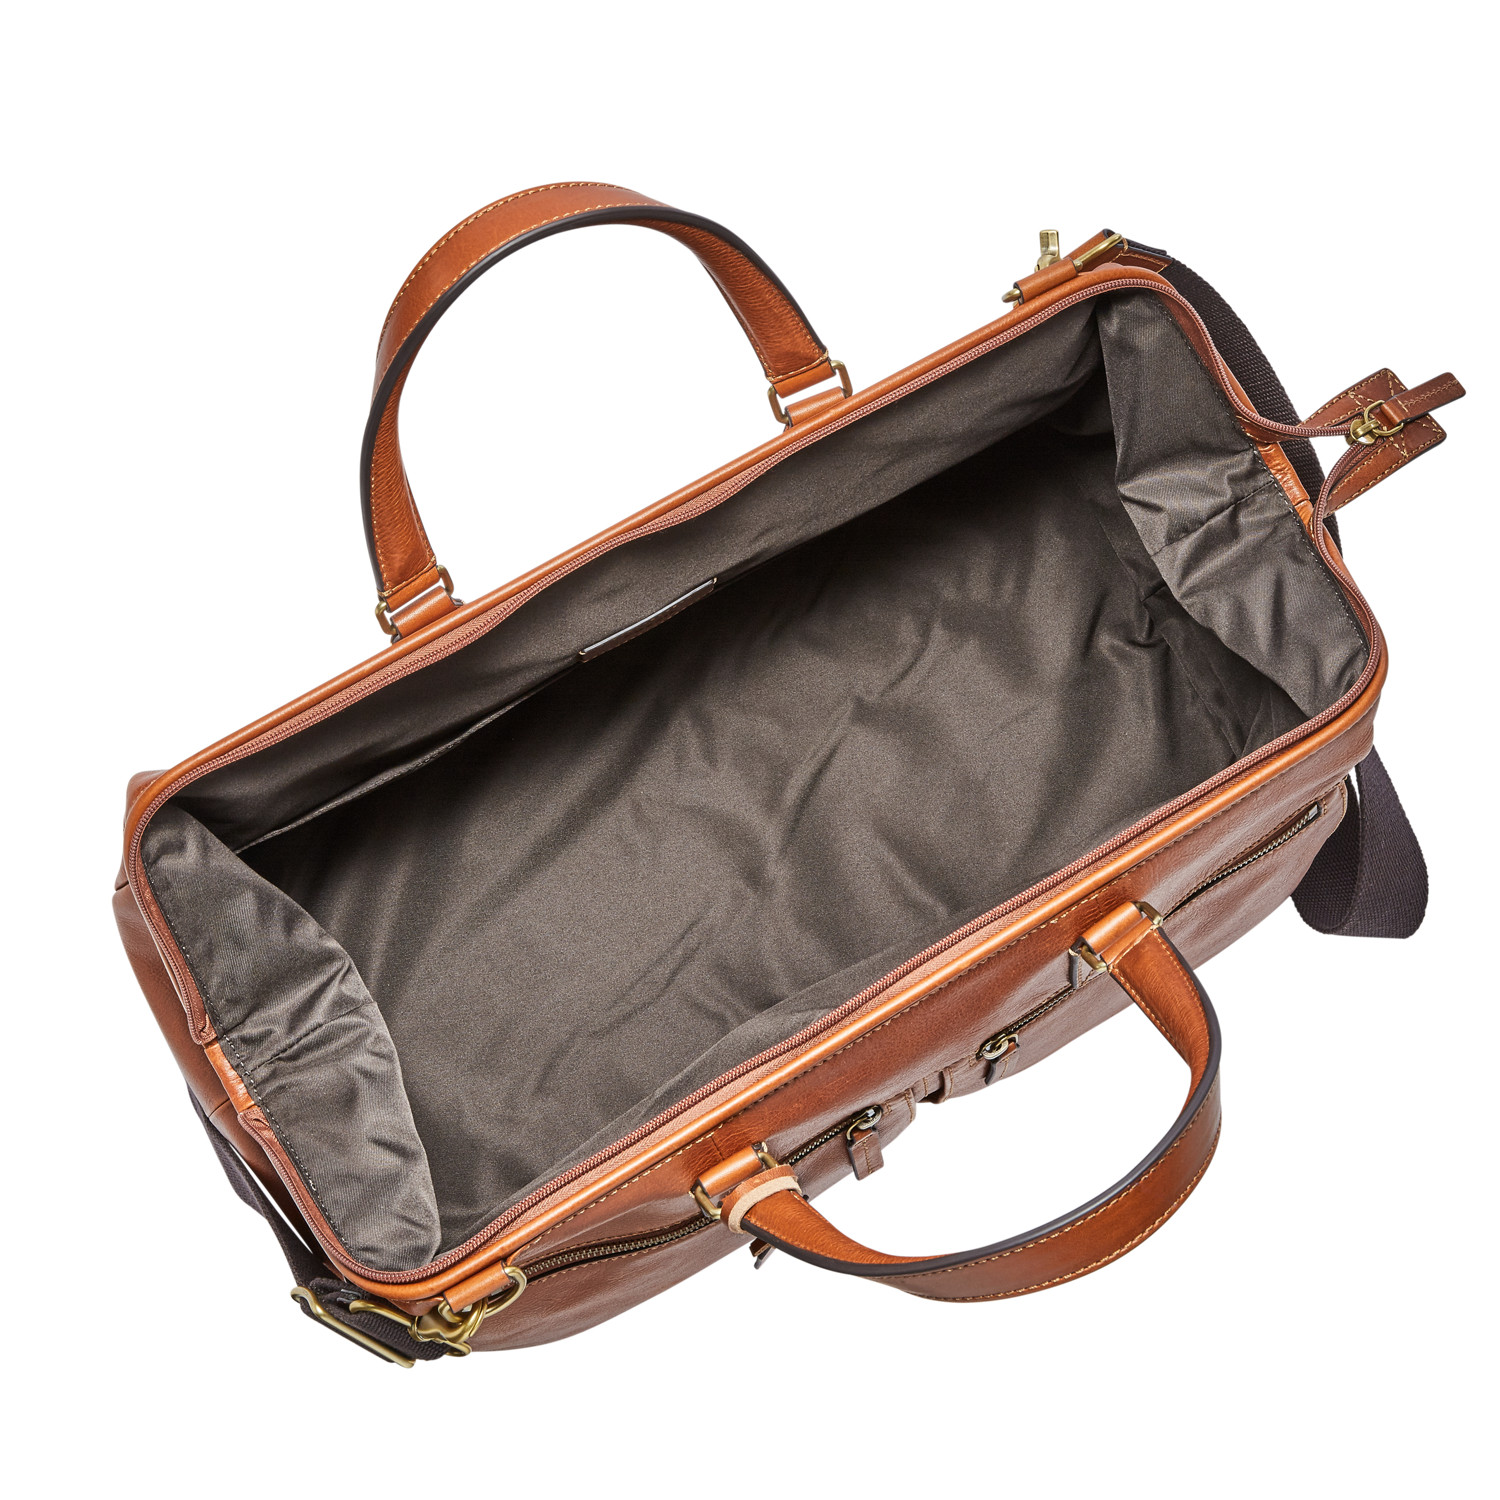 9176a3f018 Defender Duffle - Fossil